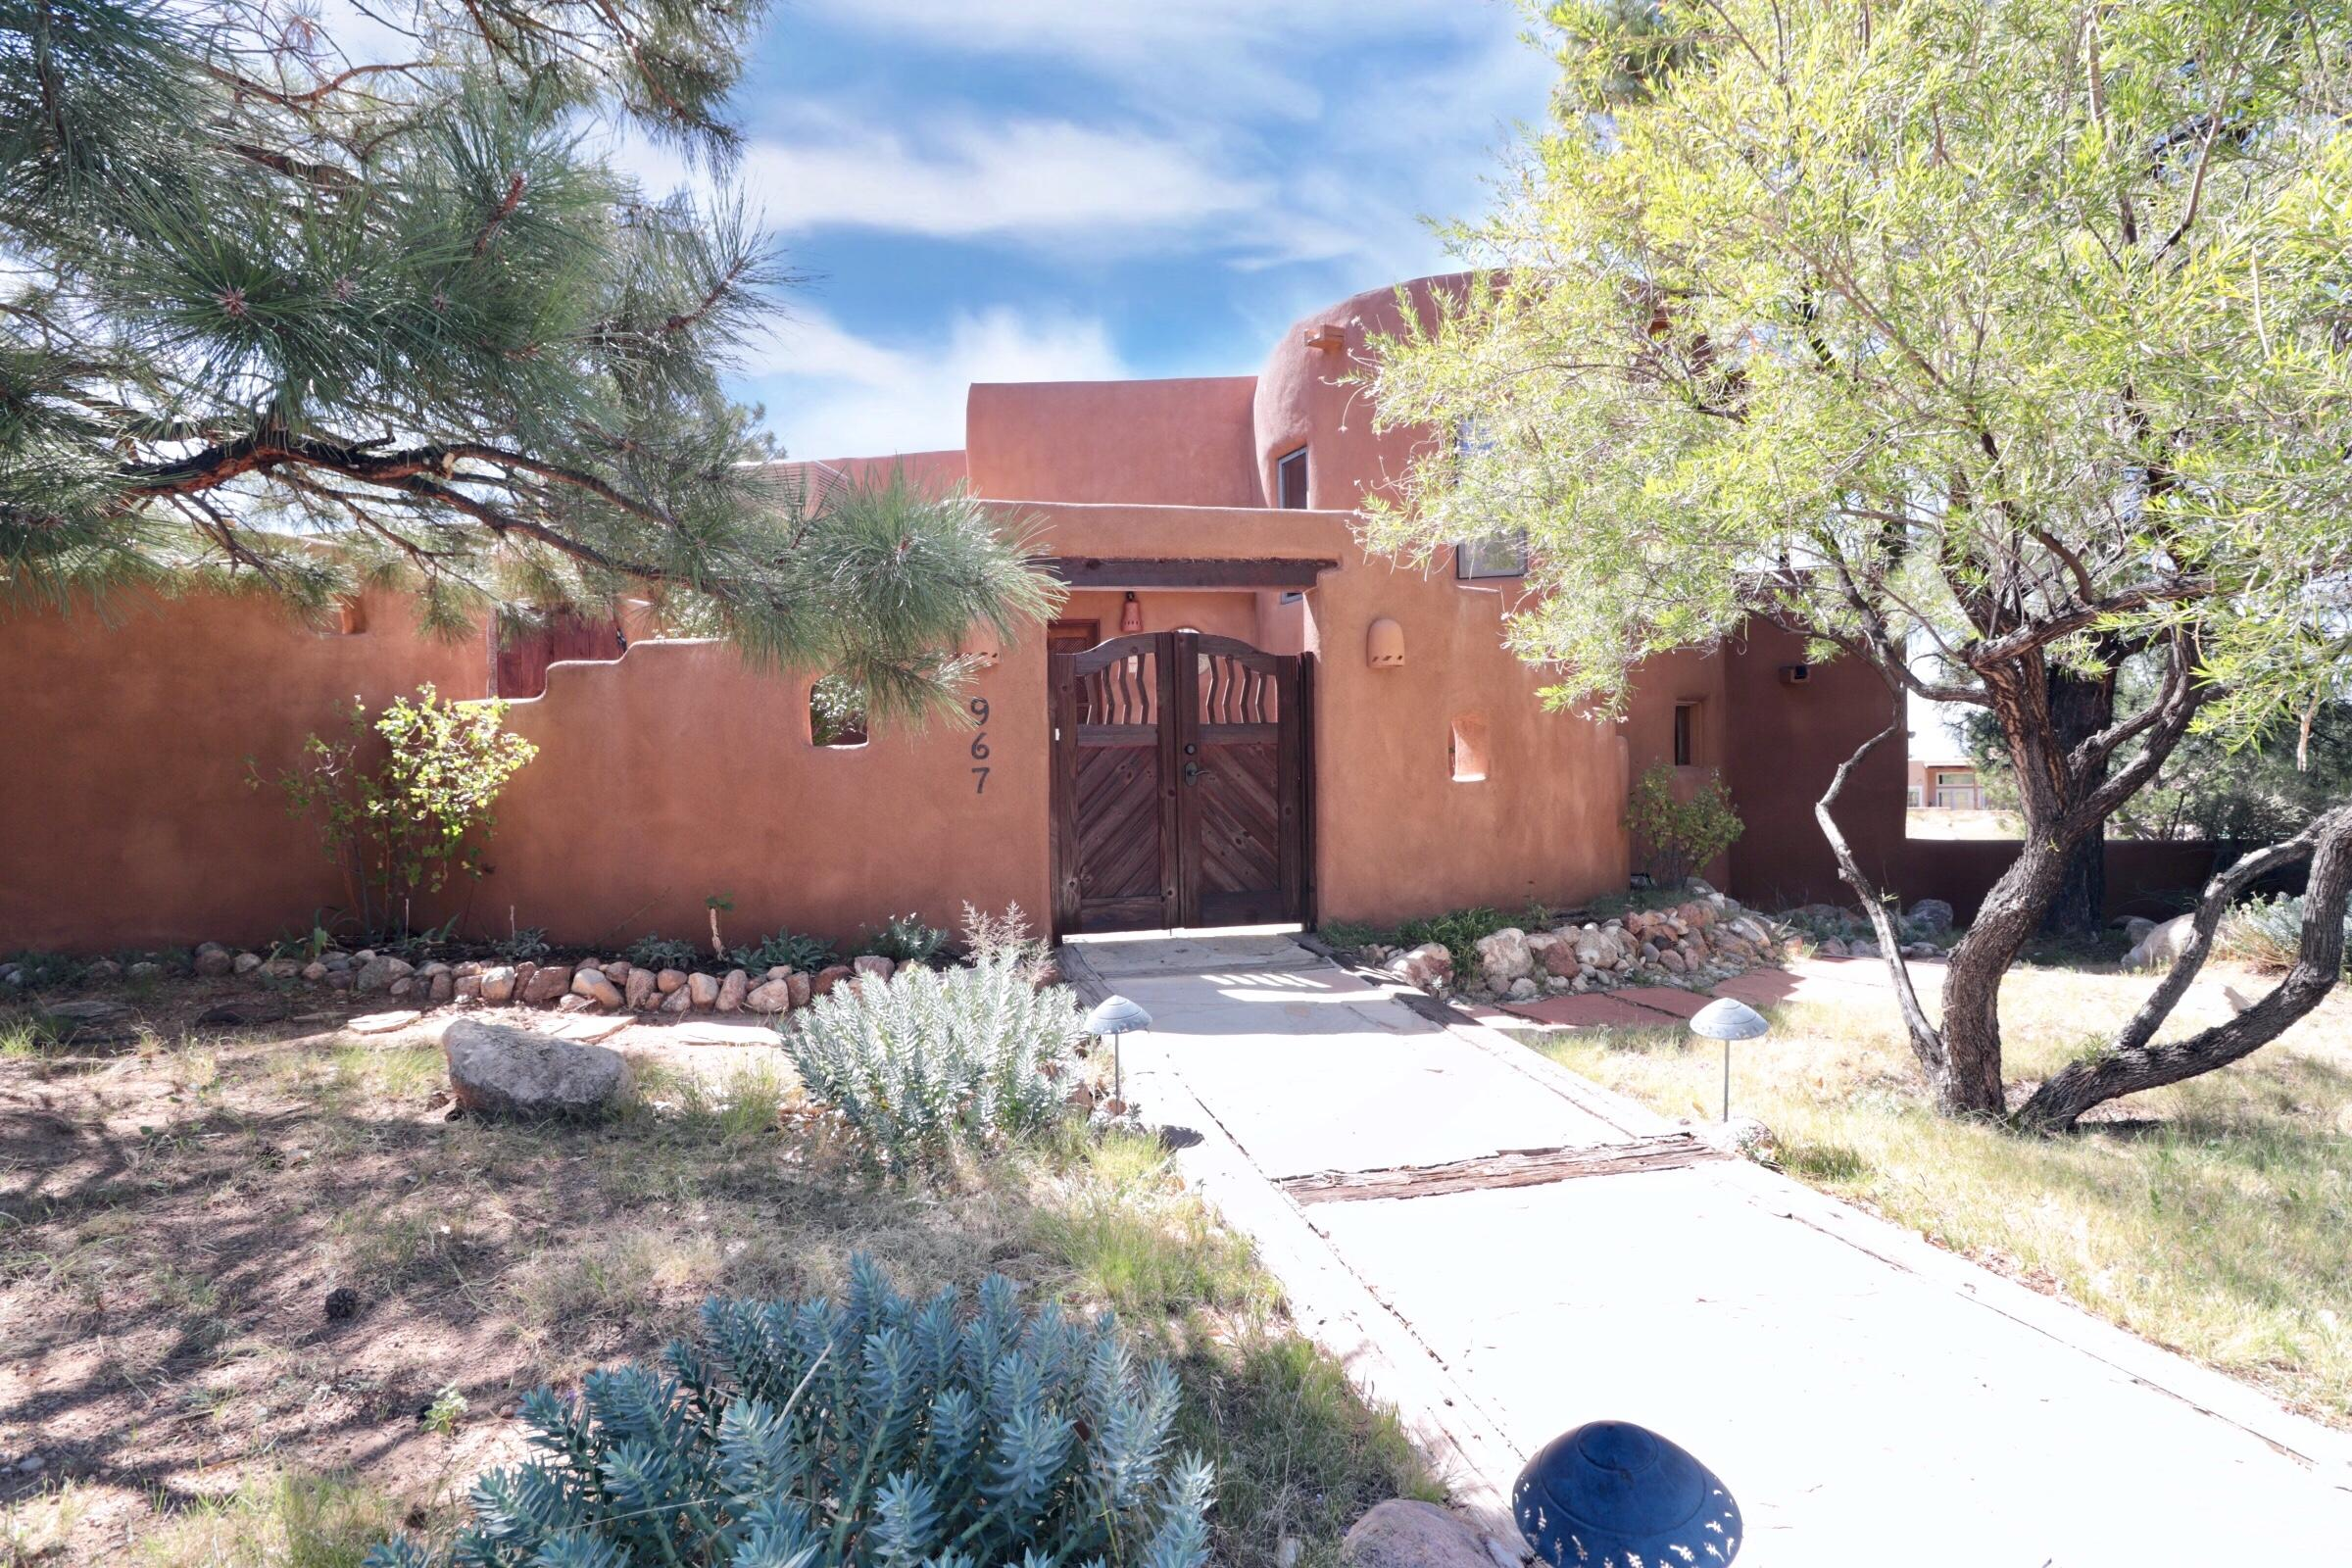 967 Antelope Avenue NE, Albuquerque, NM 87122 - Albuquerque, NM real estate listing